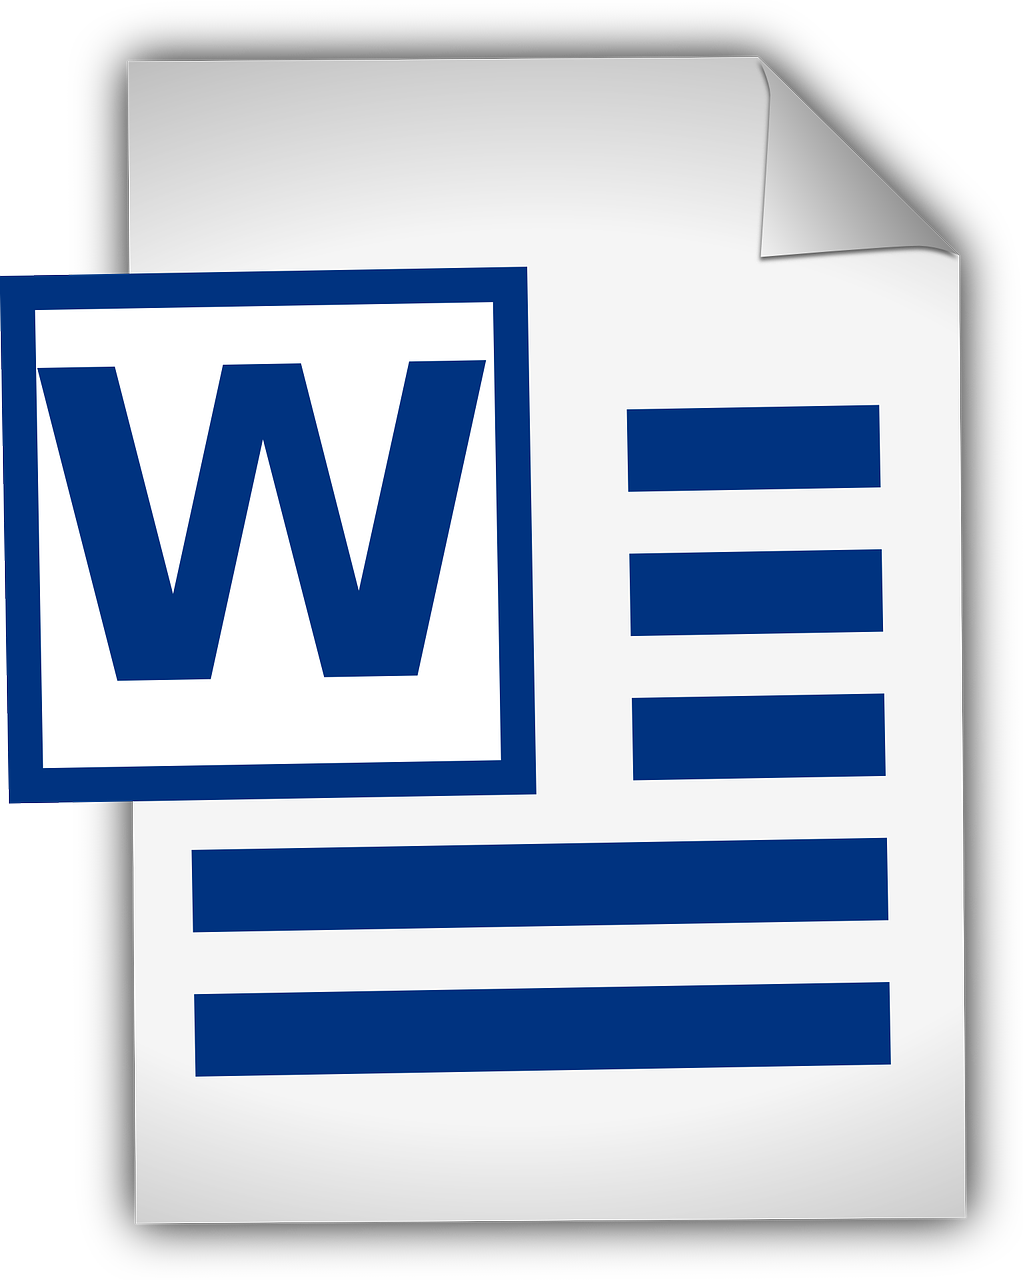 Clipart of the icono de word 2018 free image.